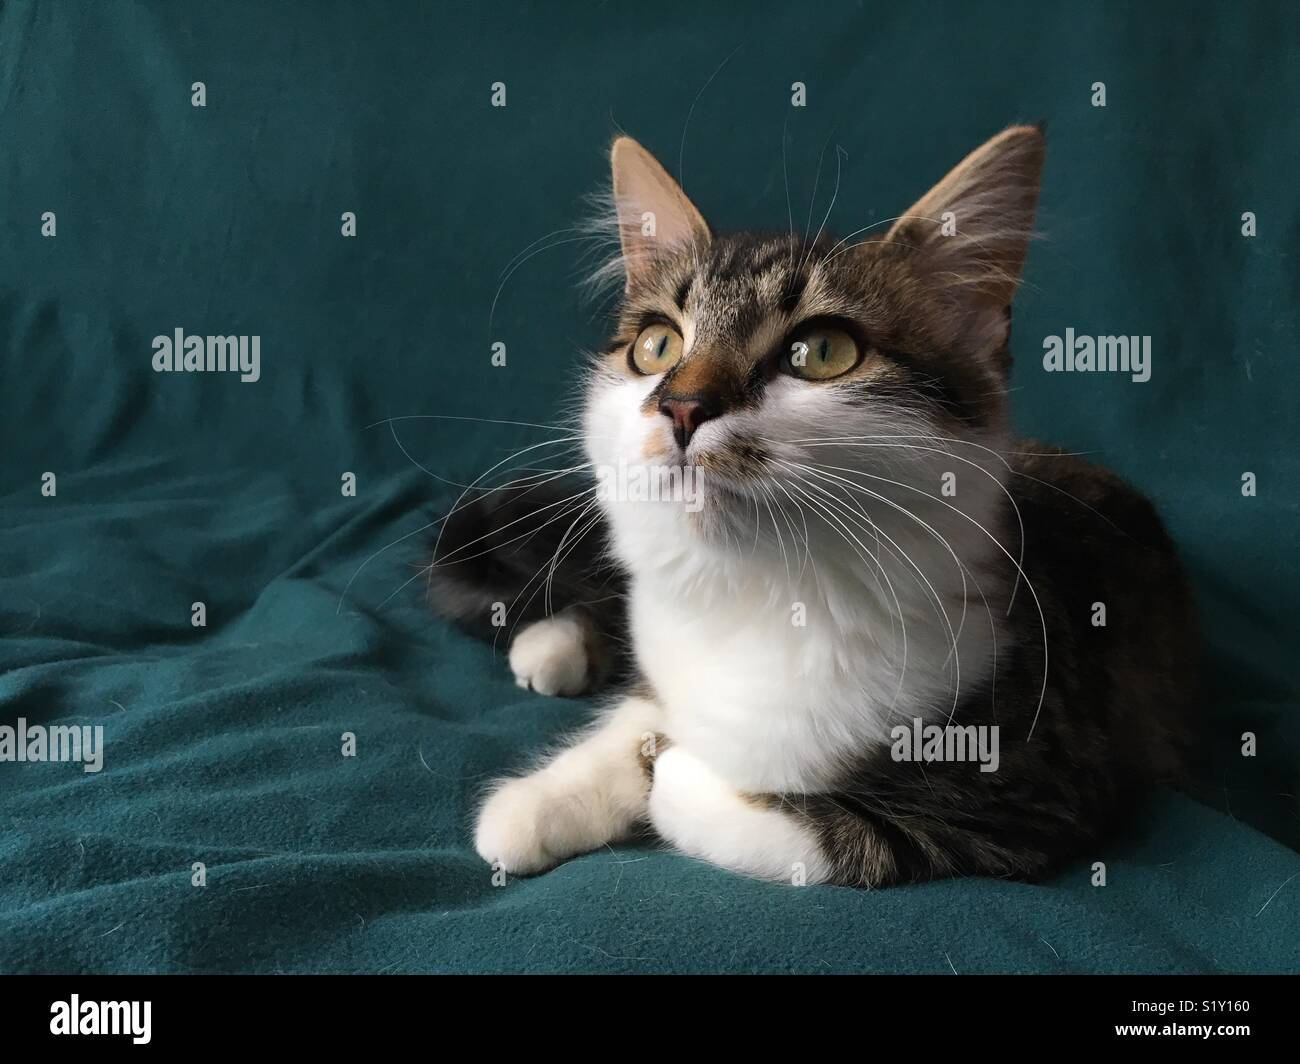 Cat sat looking into distance, sat on a green blanket - Stock Image